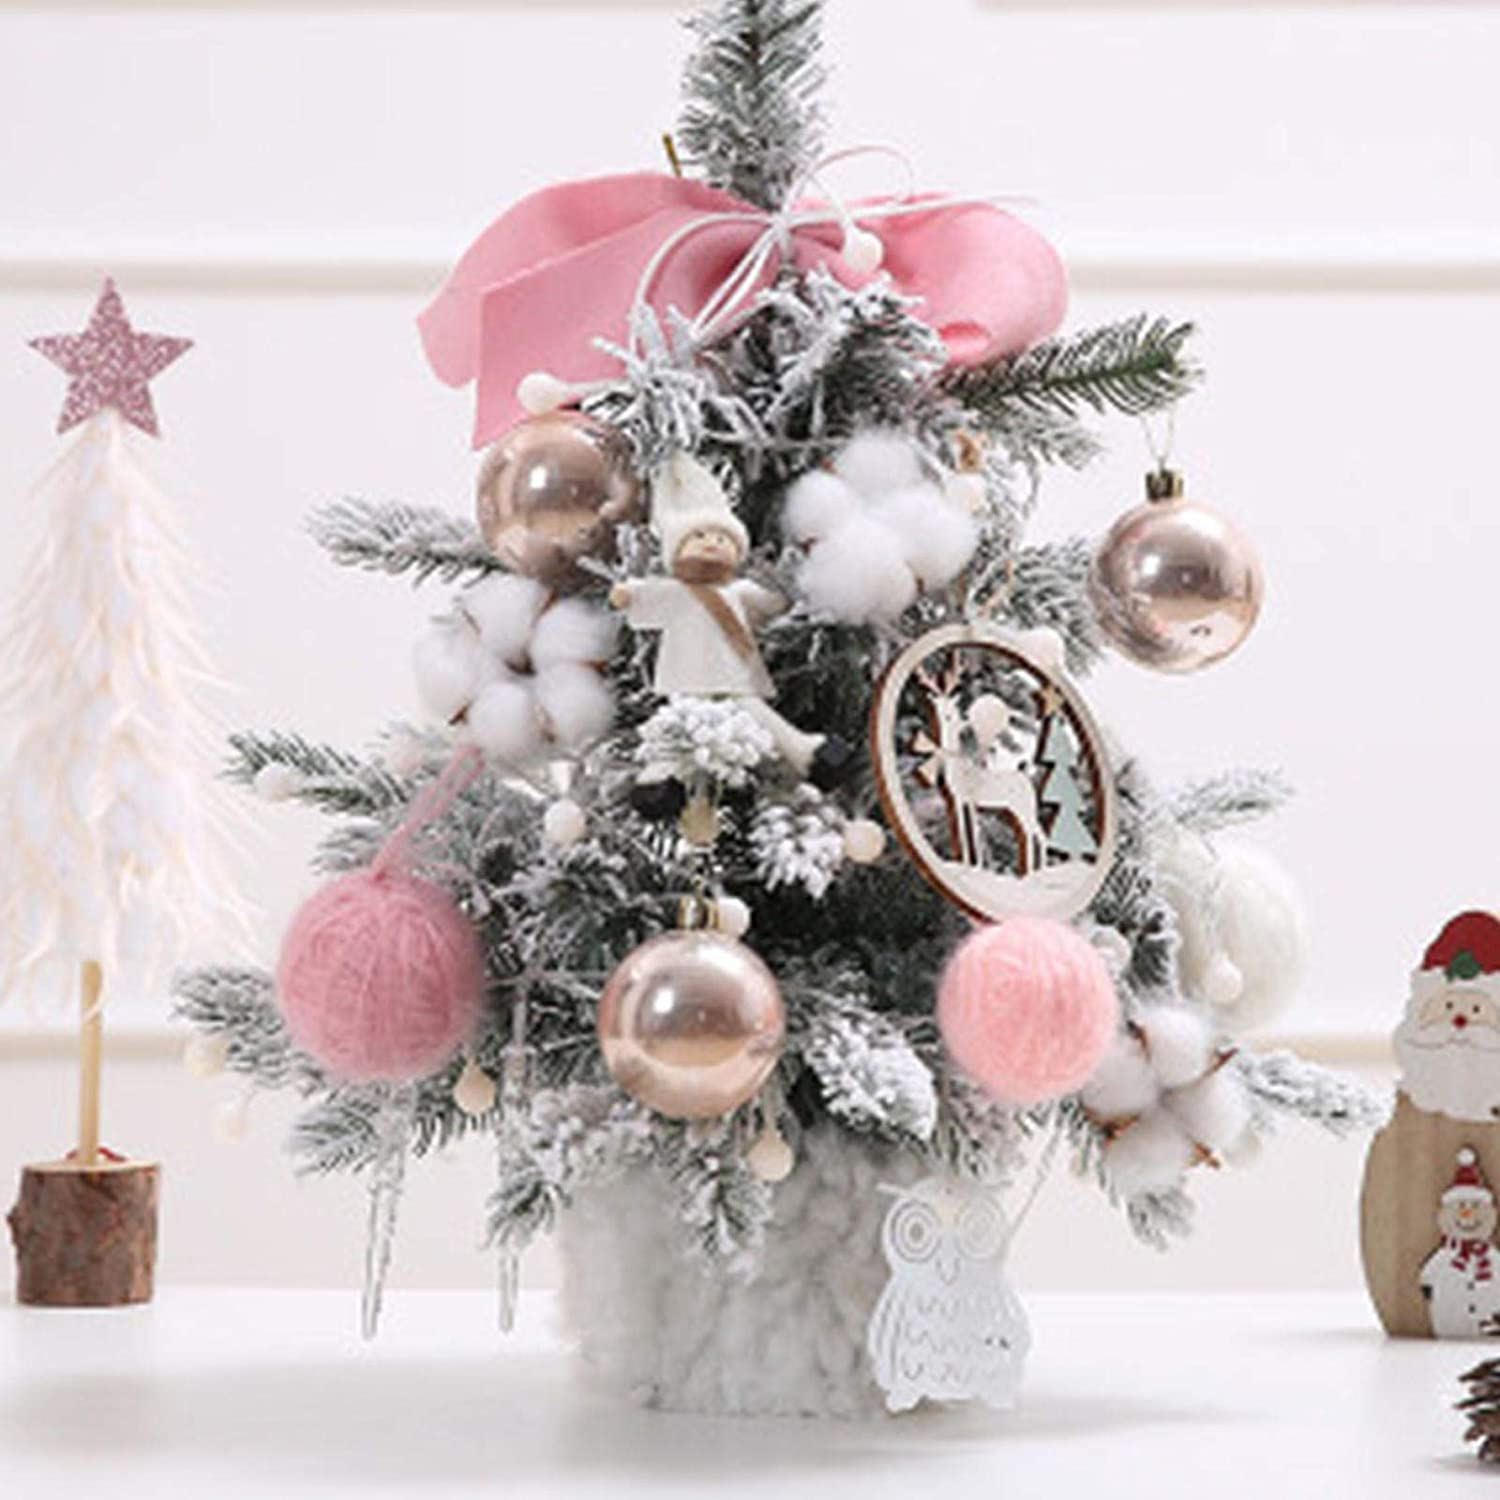 Mini Xmas Pine Tree with Decorations Artificial Christmas Tree Warm Yellow Led Lights Indoor Decorative Mini Xmas Tree for Christmas, Home, Kitchen, Dining Table Decor Pink 30cm